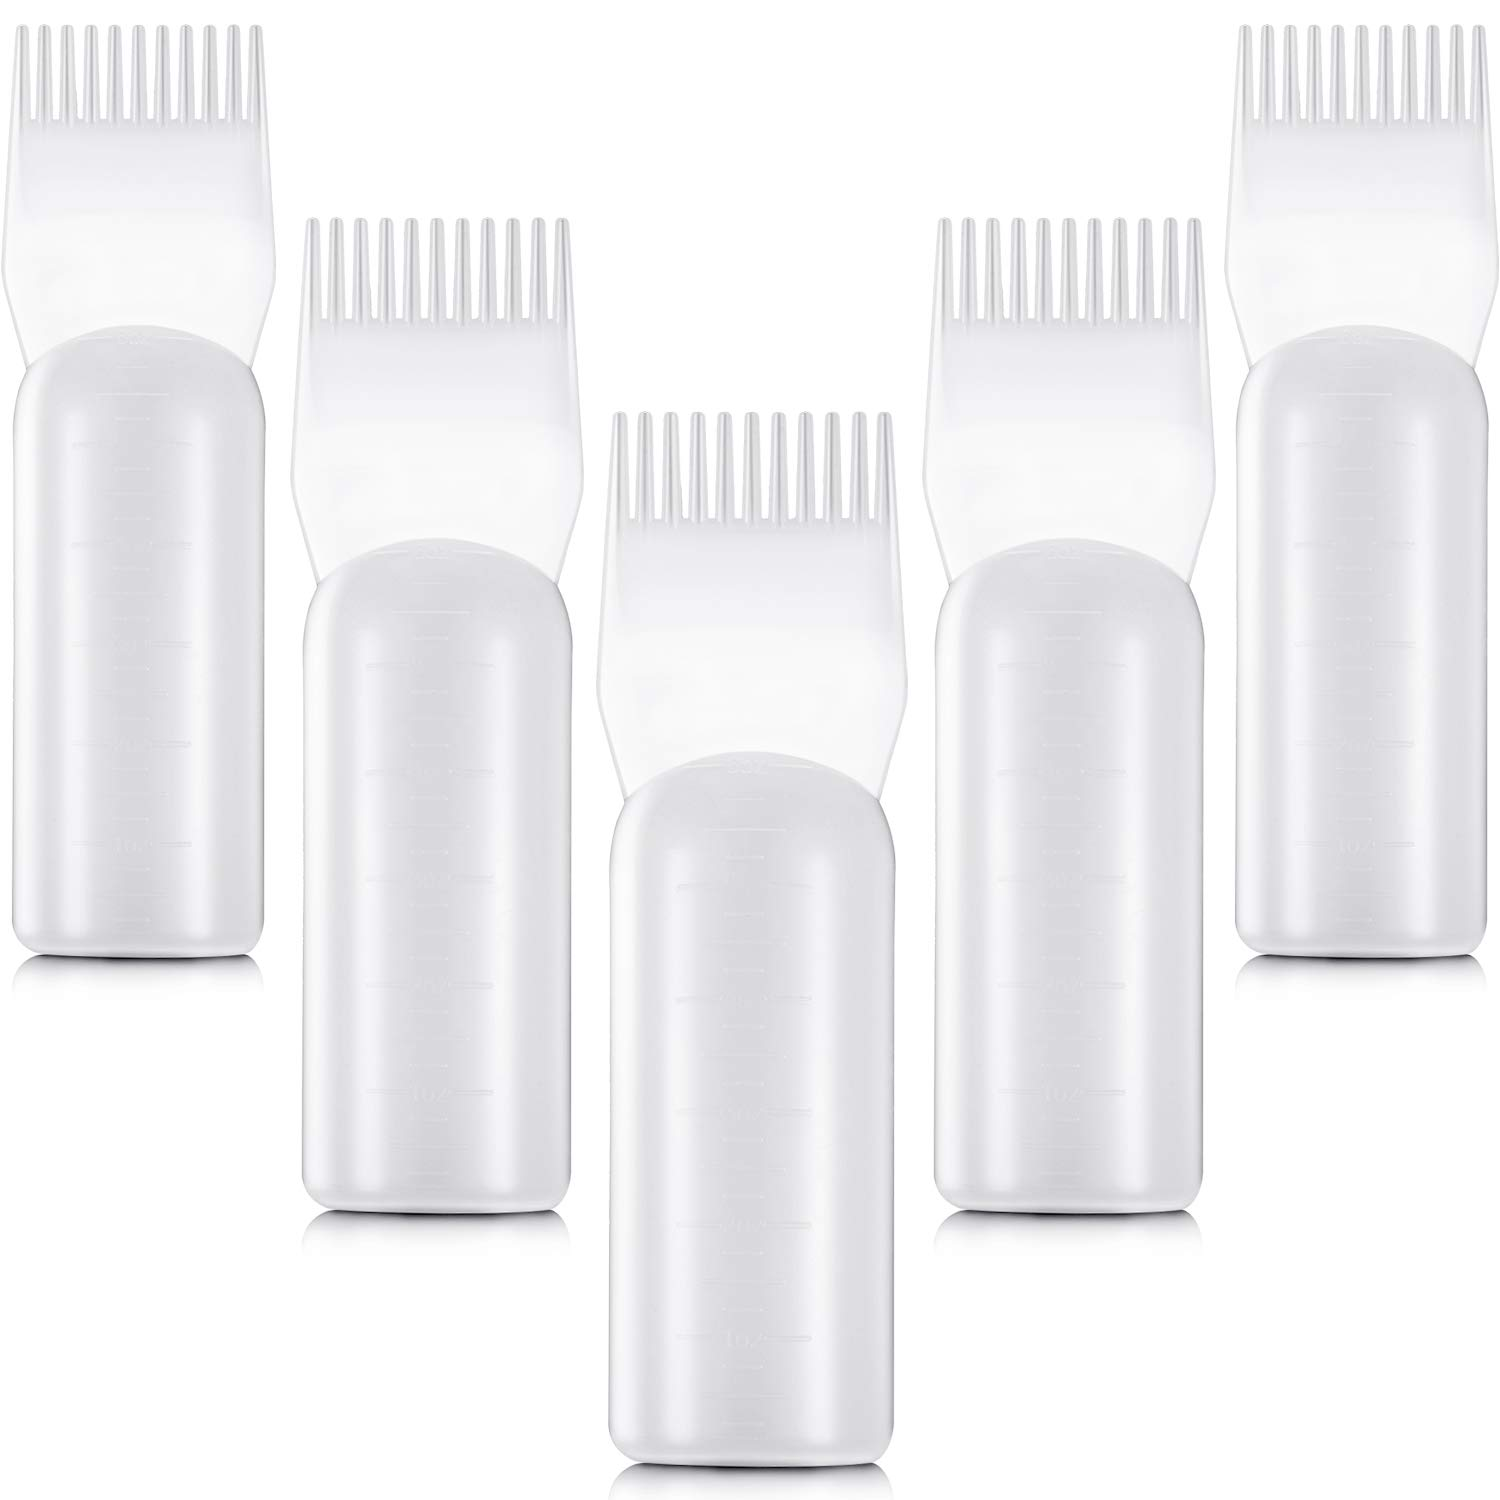 5 Pieces Root Comb Applicator Bottles Hair Dyeing Bottles with Graduated Scale for Salon Home Supplies by Boao